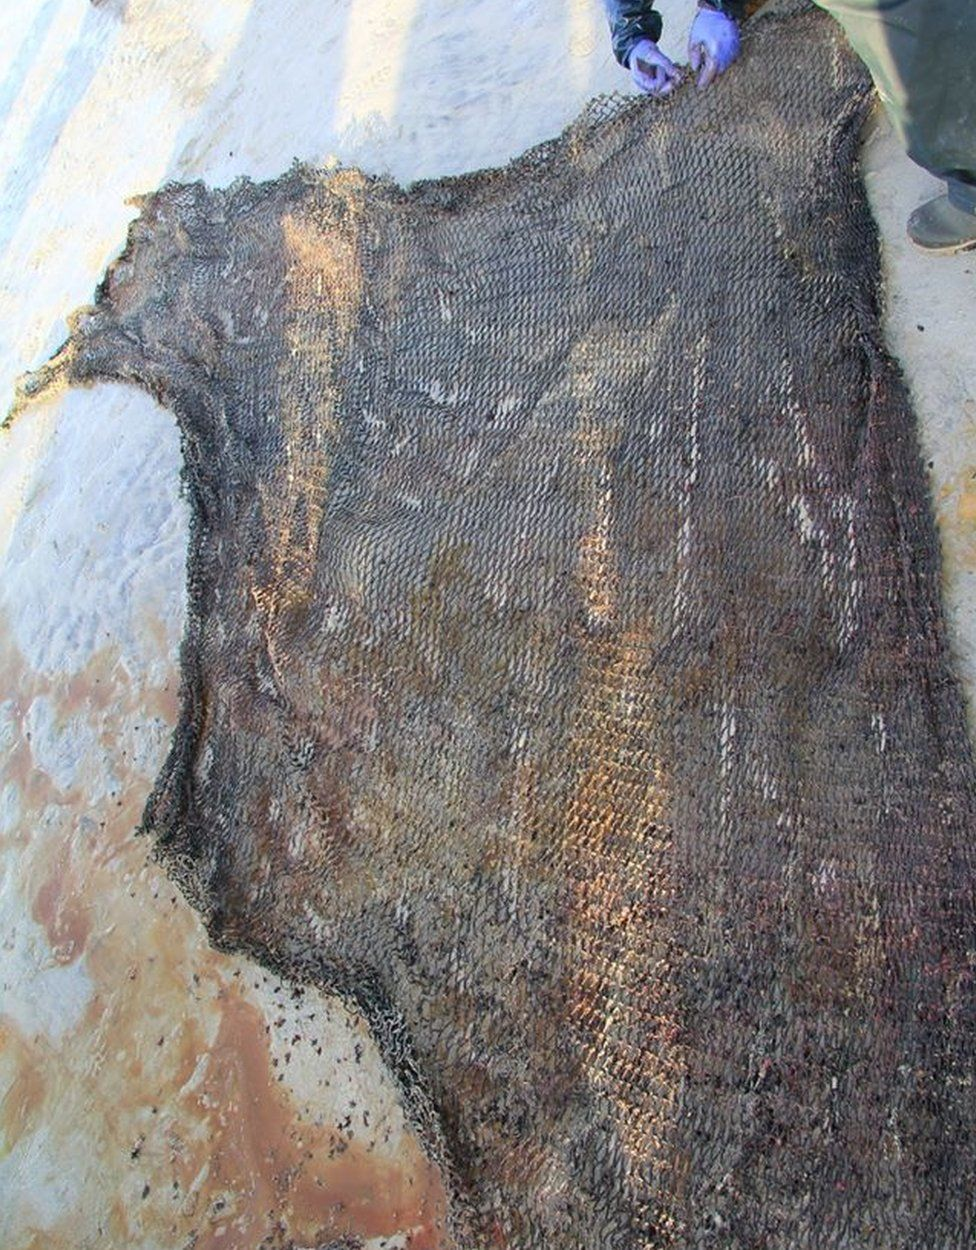 Net from whale's stomach